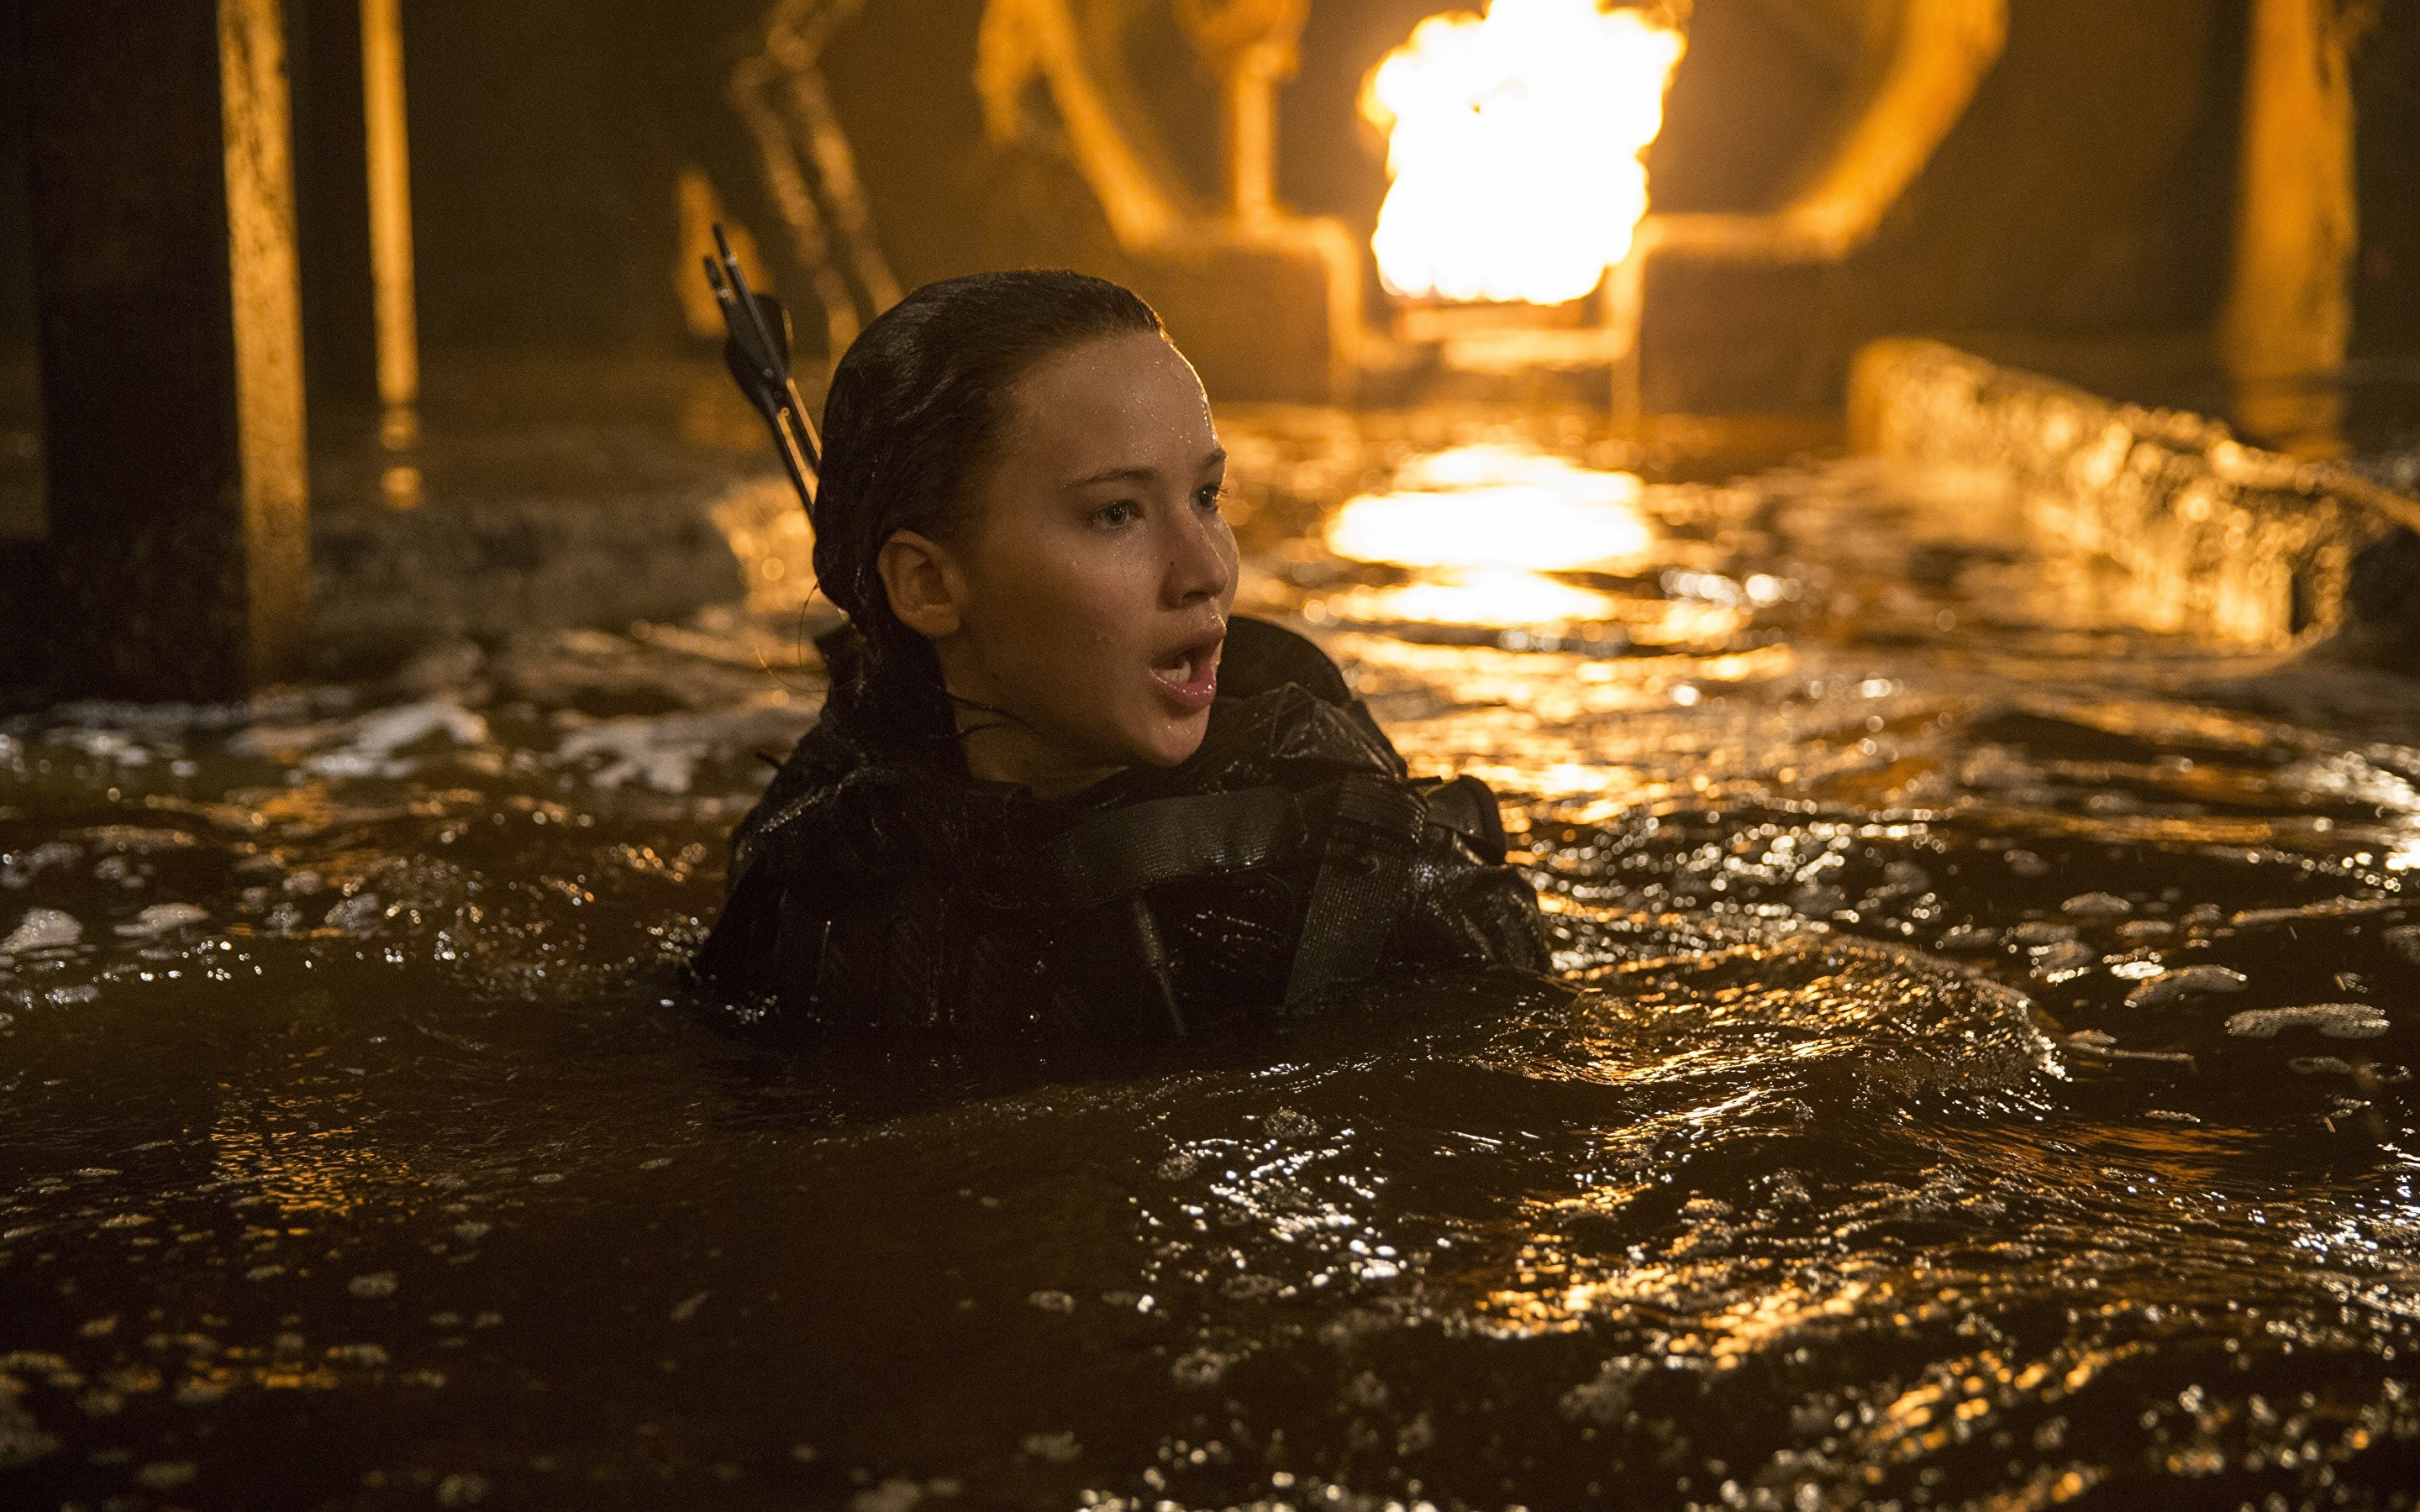 2880x1800 Wallpapers The Hunger Games Jennifer Lawrence Mockingjay - Part 2 Girls  Movies Water Celebrities